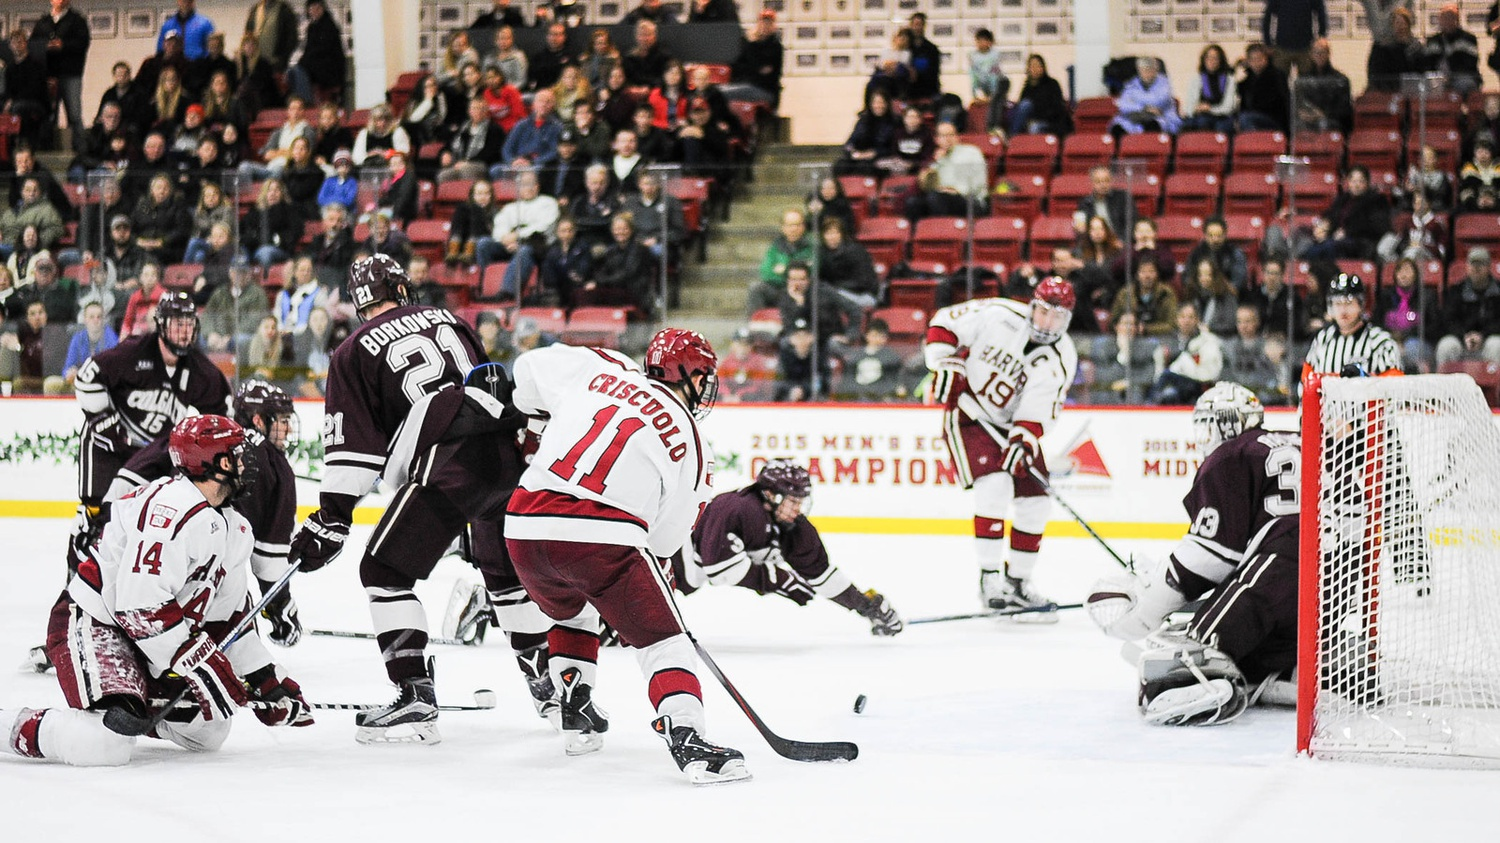 Feb. 20: With Harvard and Colgate even at four, Vesey set up Kyle Criscuolo for this game-winner with 2:47 left on Senior Night at the Bright Center.